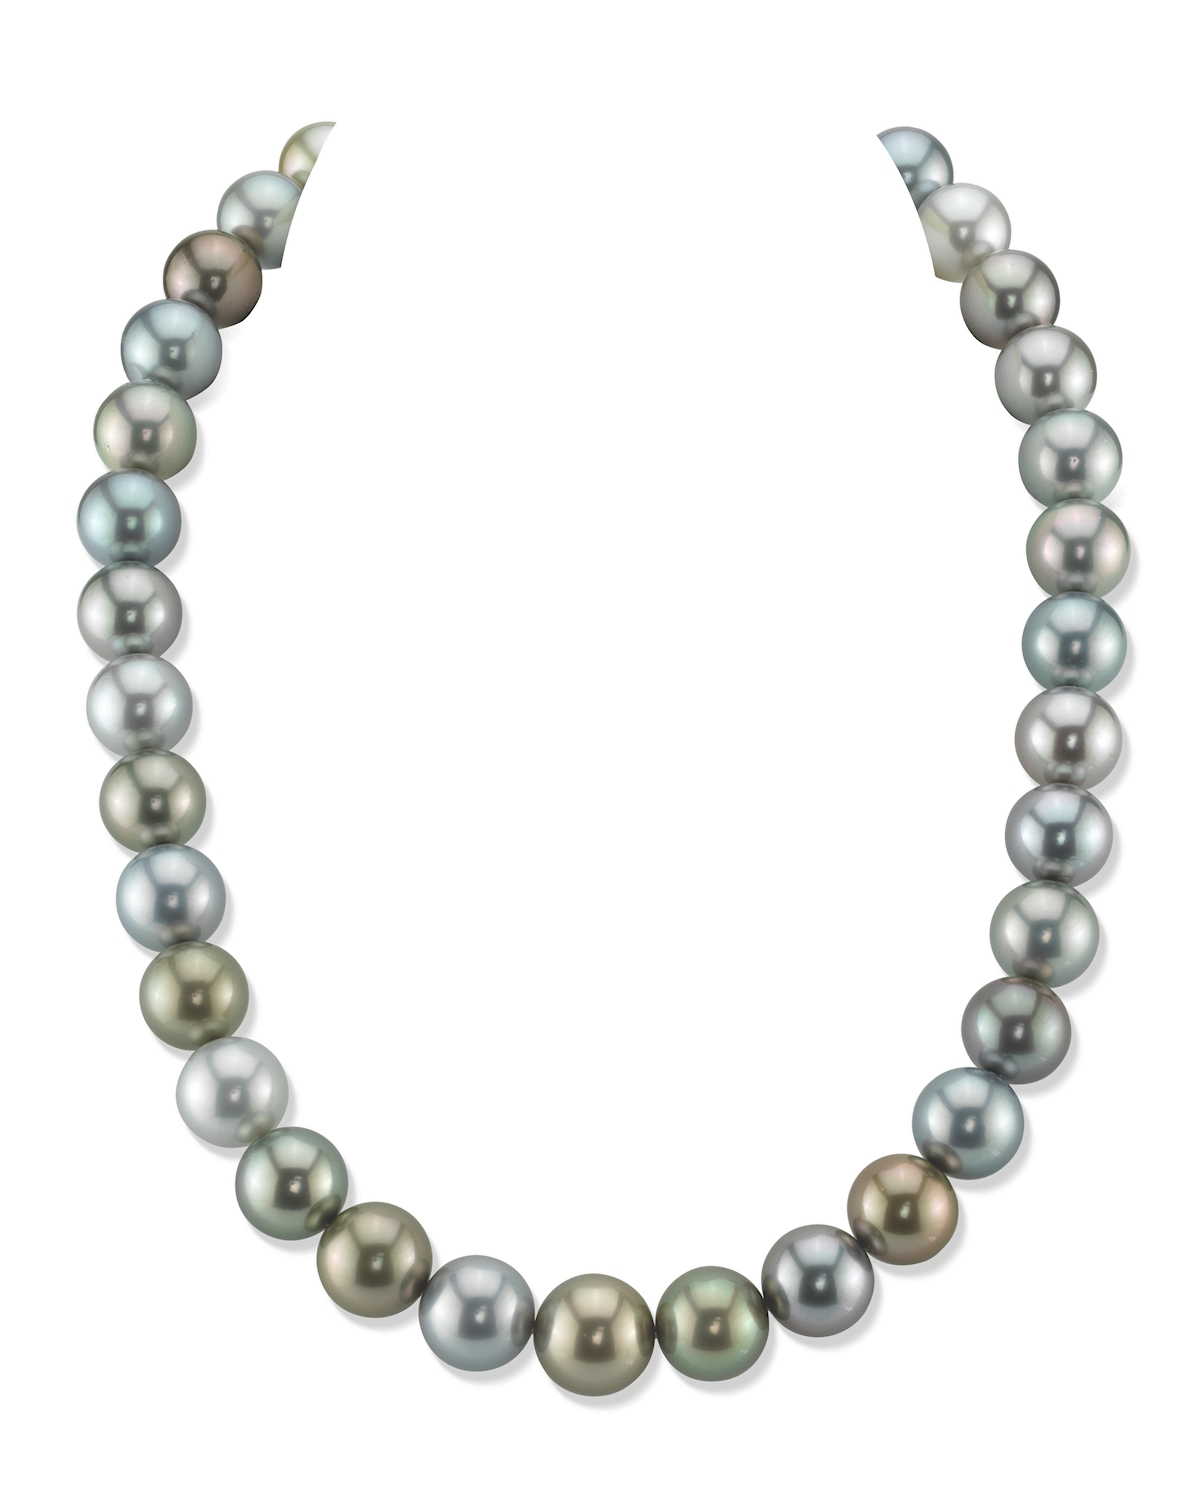 13-14mm Tahitian South Sea Light Multicolor Pearl Necklace - AAAA Quality